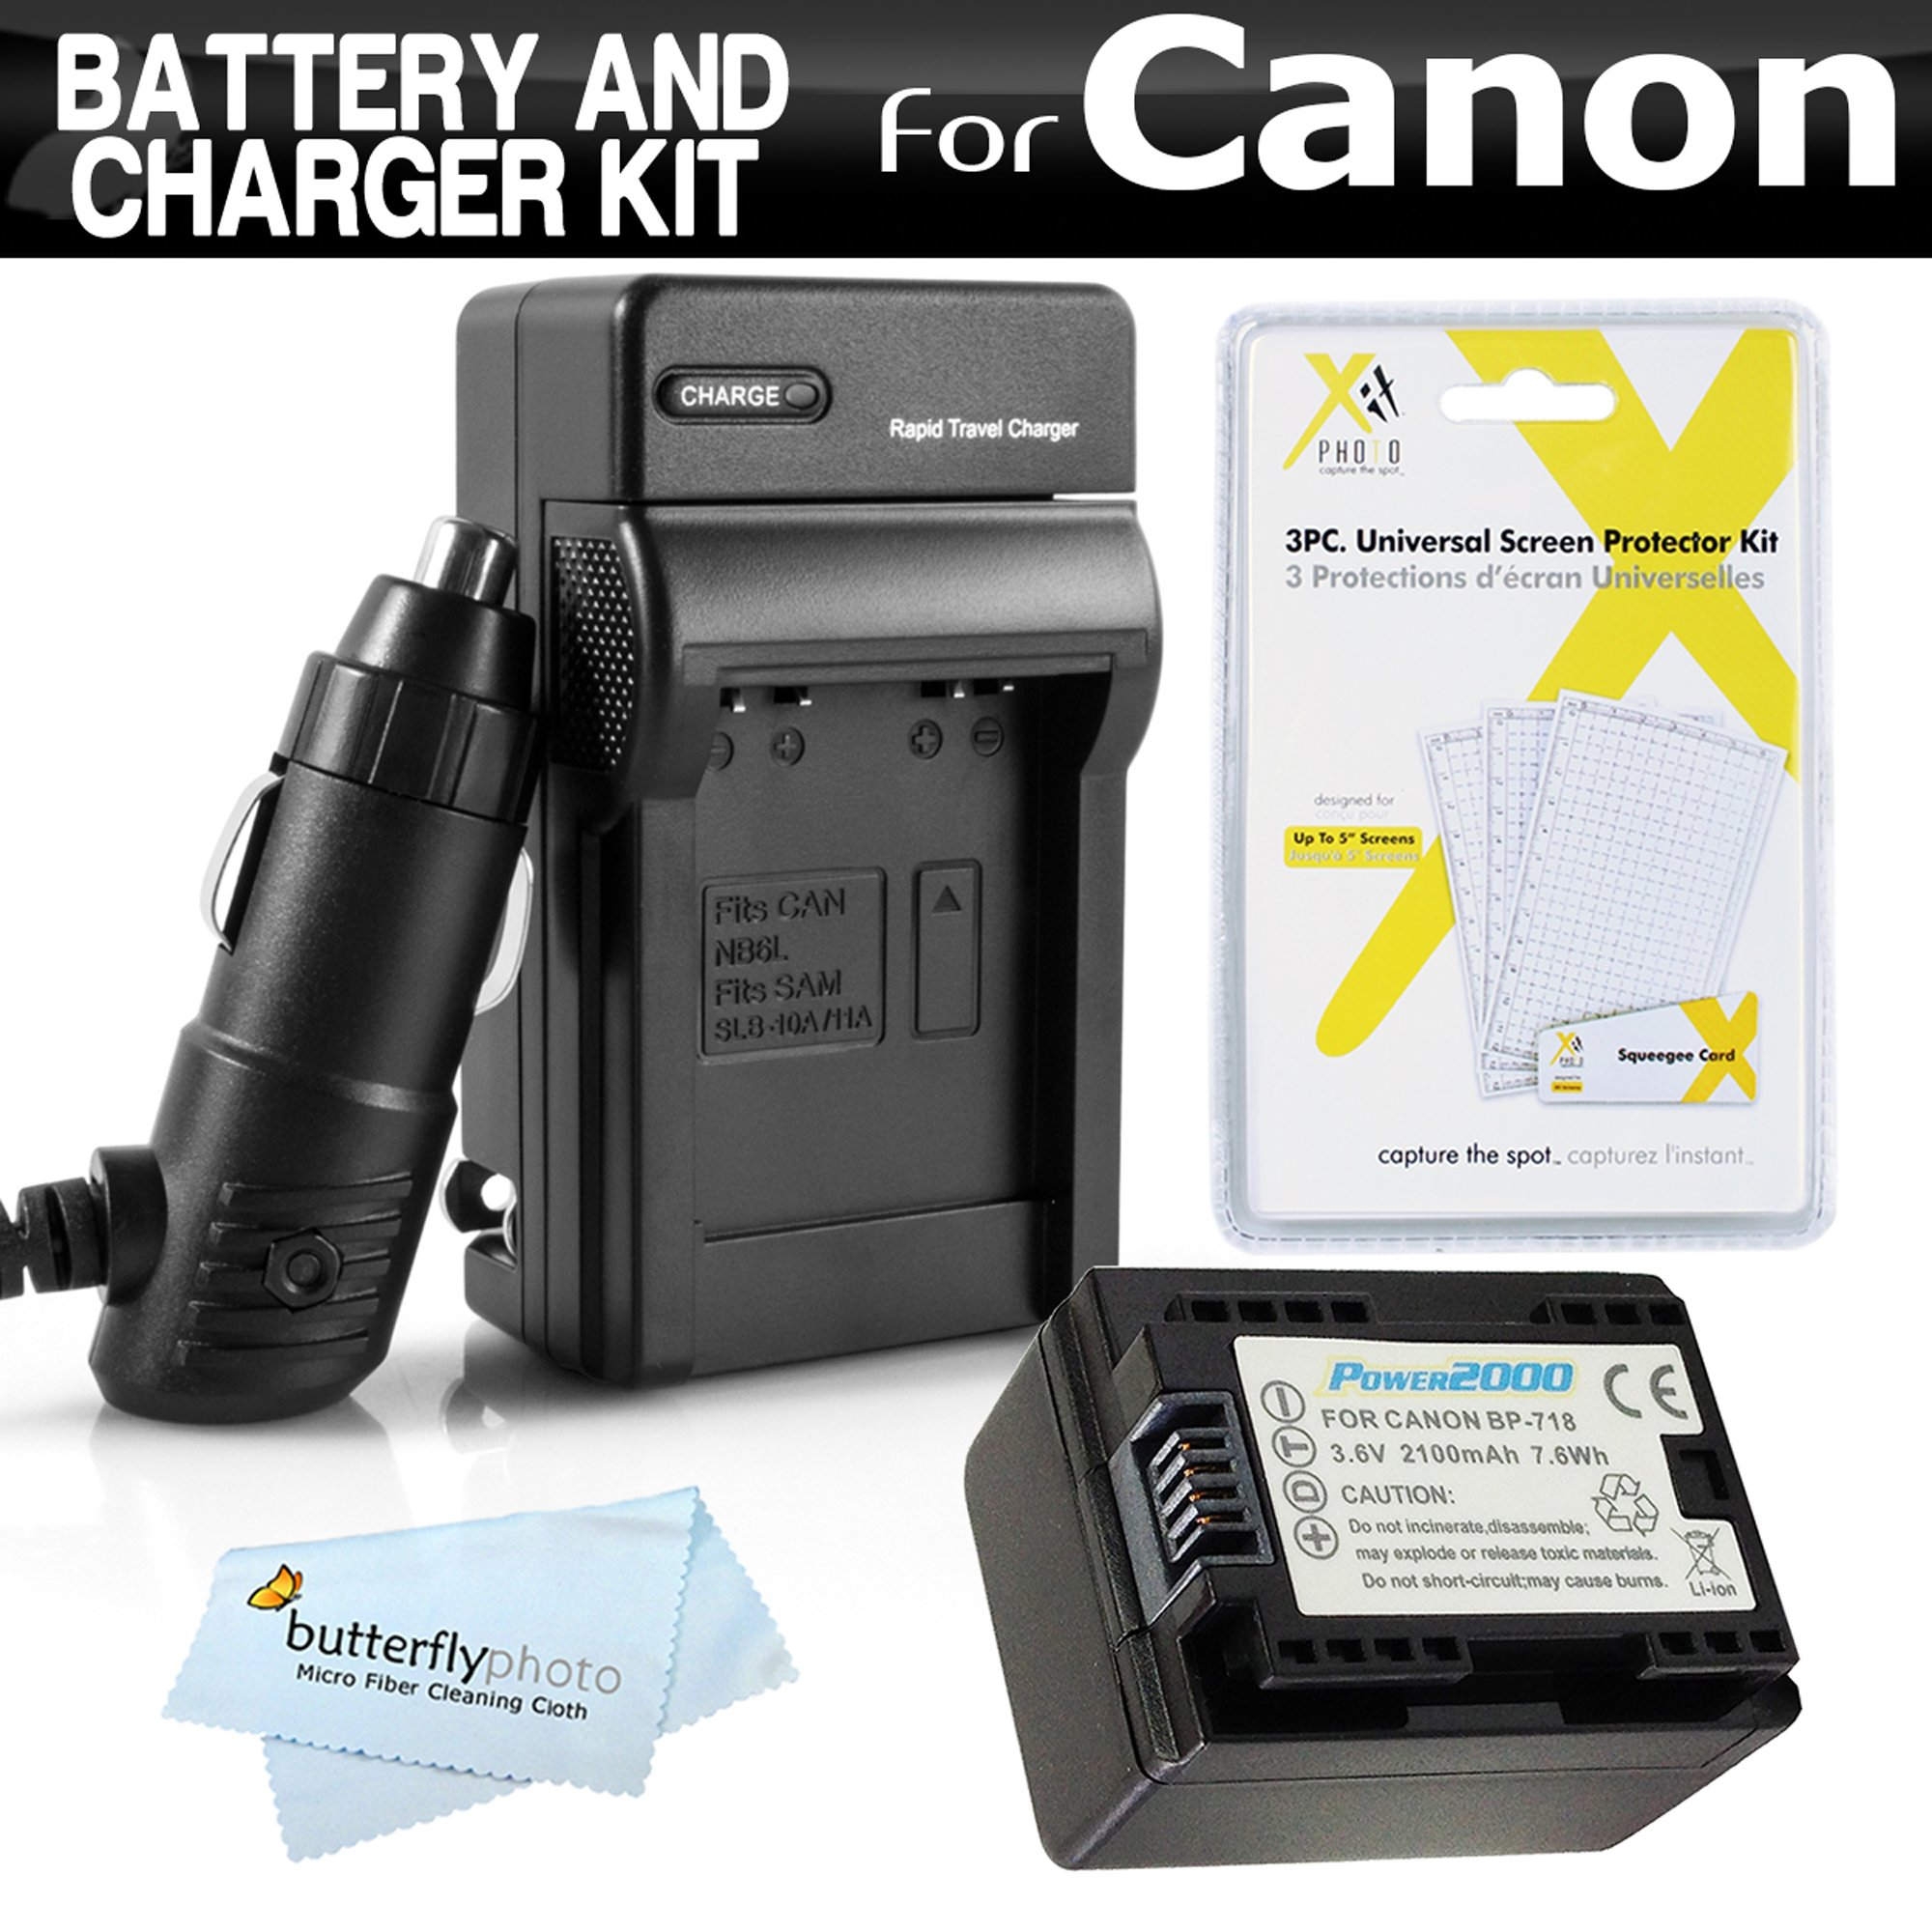 Battery And Charger Kit For Canon VIXIA HF R82, HF R80, HF R800, HF R62, HF R60, HF R600, HF R700, HF R72, HF R70 Camcorder Includes Replacement BP-718 Battery + Charger (Replaces Canon BP-709,BP-718) by ButterflyPhoto